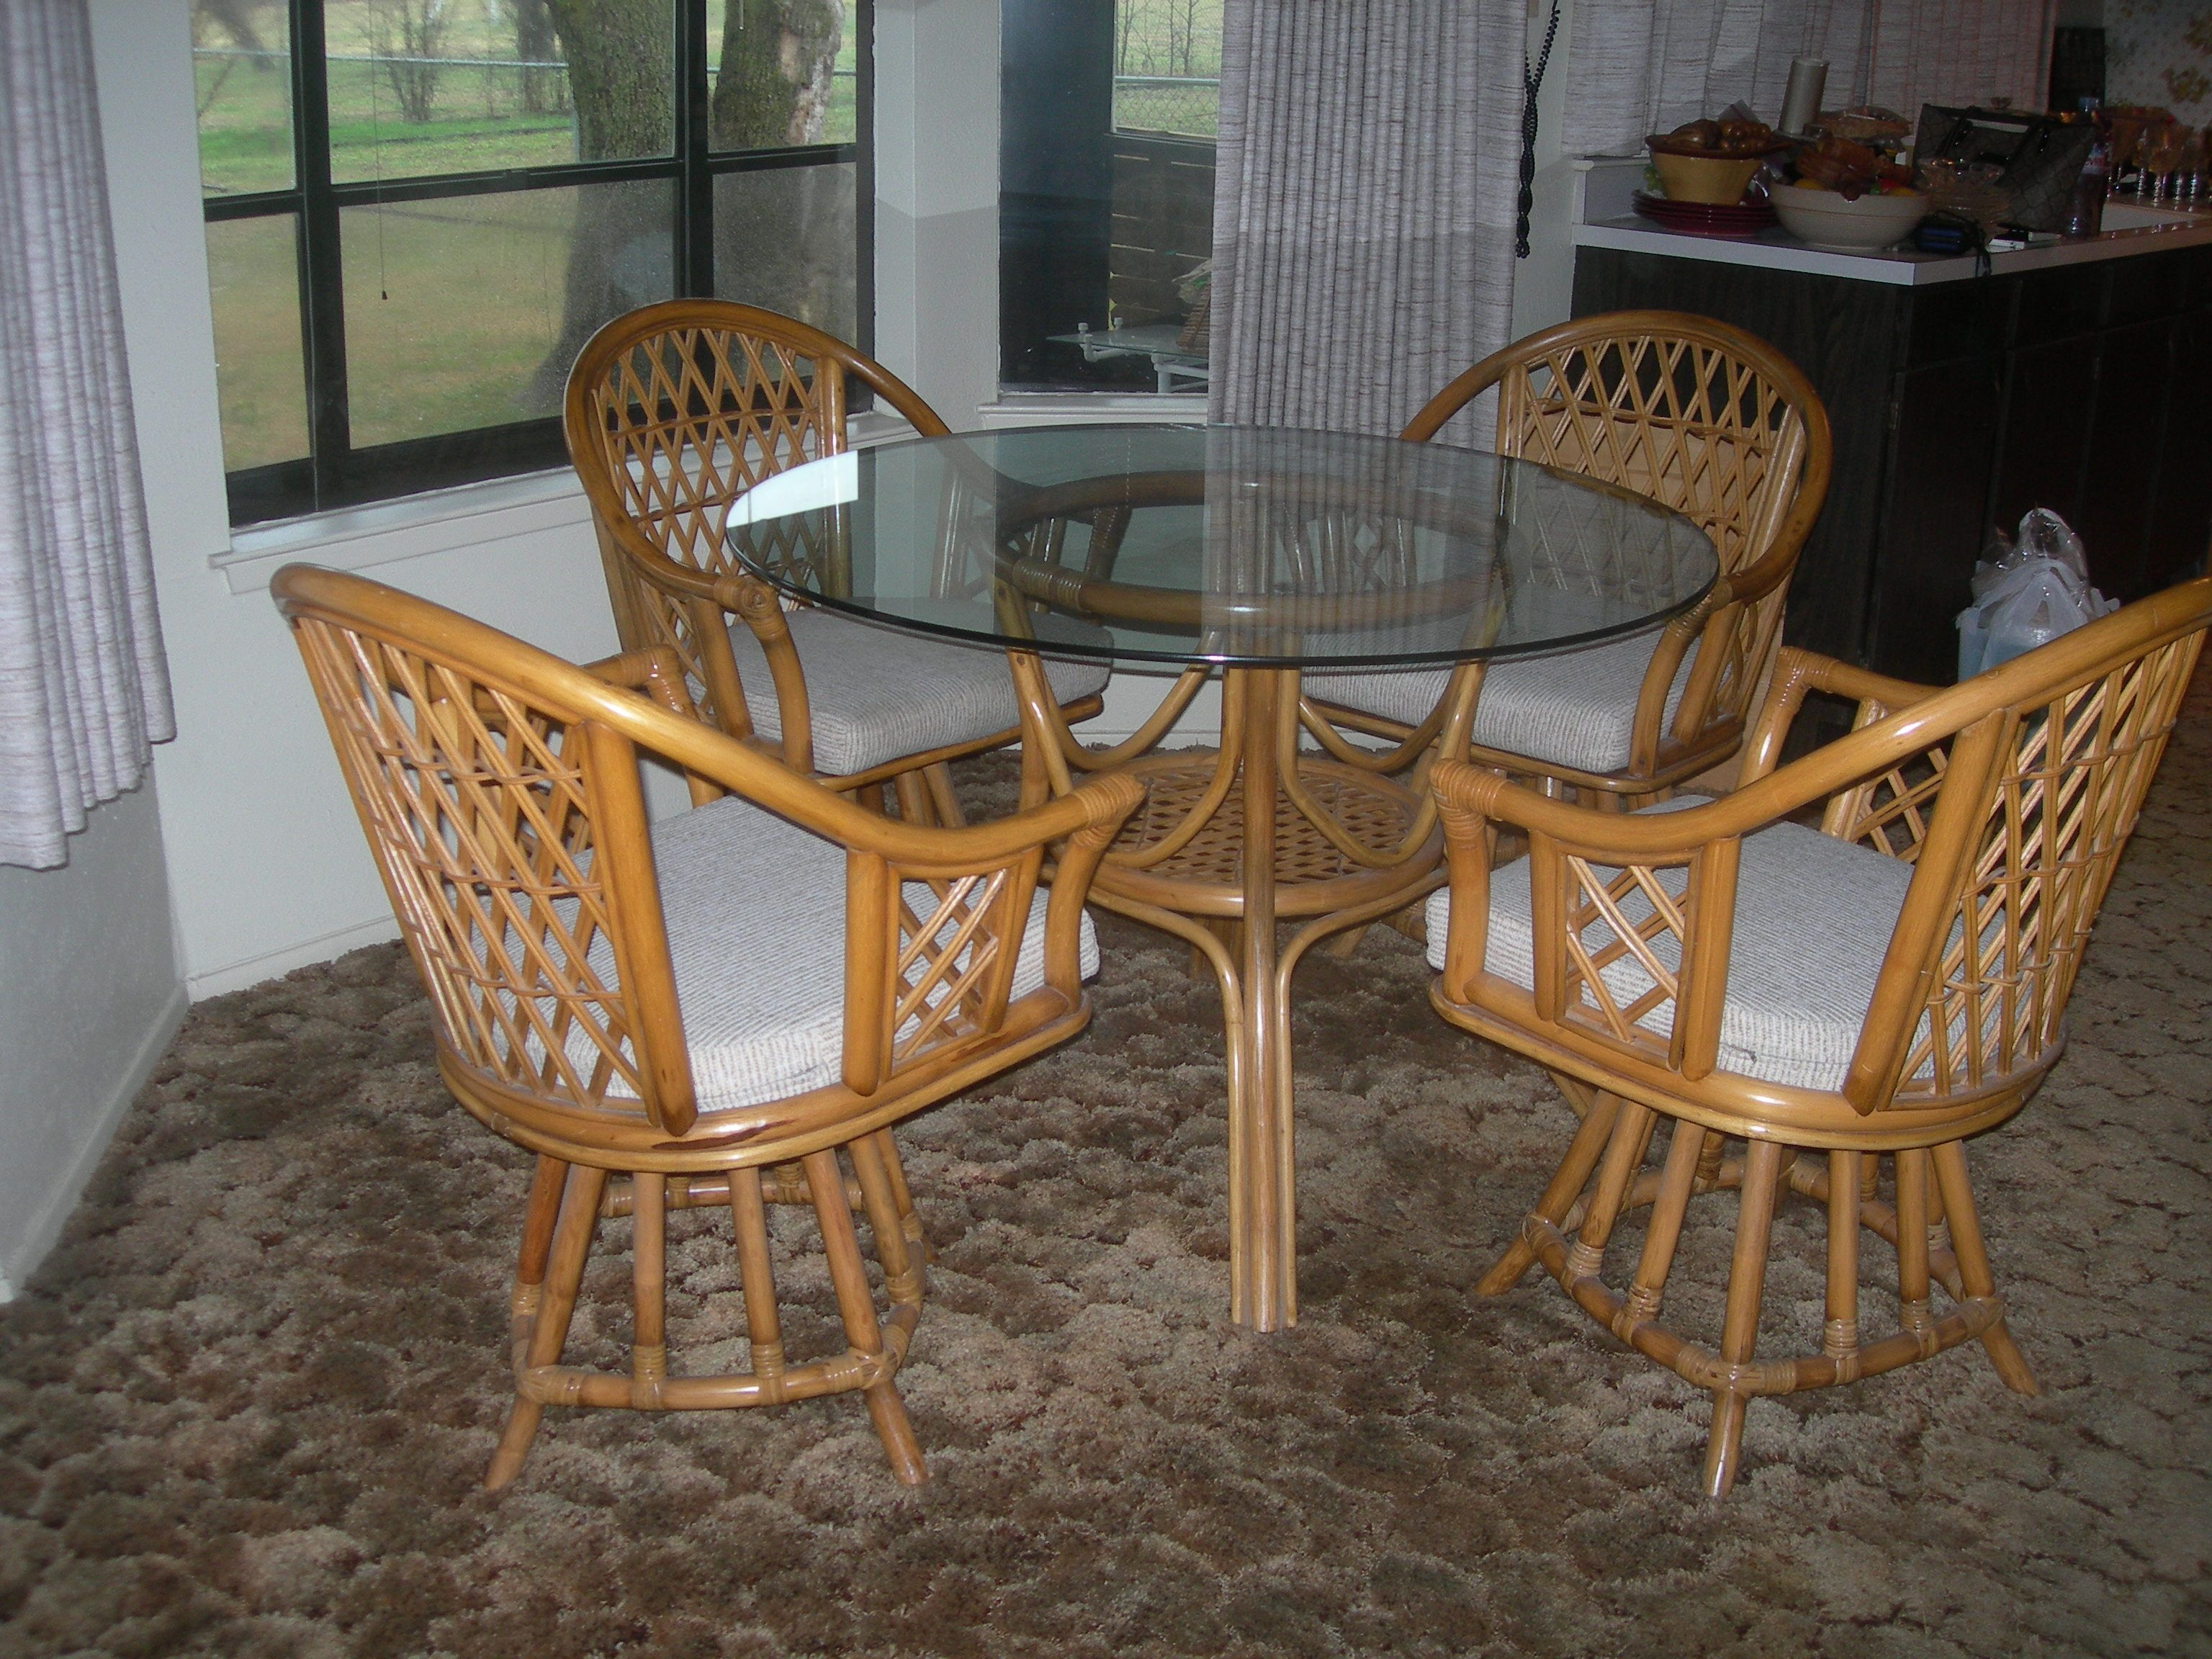 Bambo table and chairs in blc2beans garage sale north